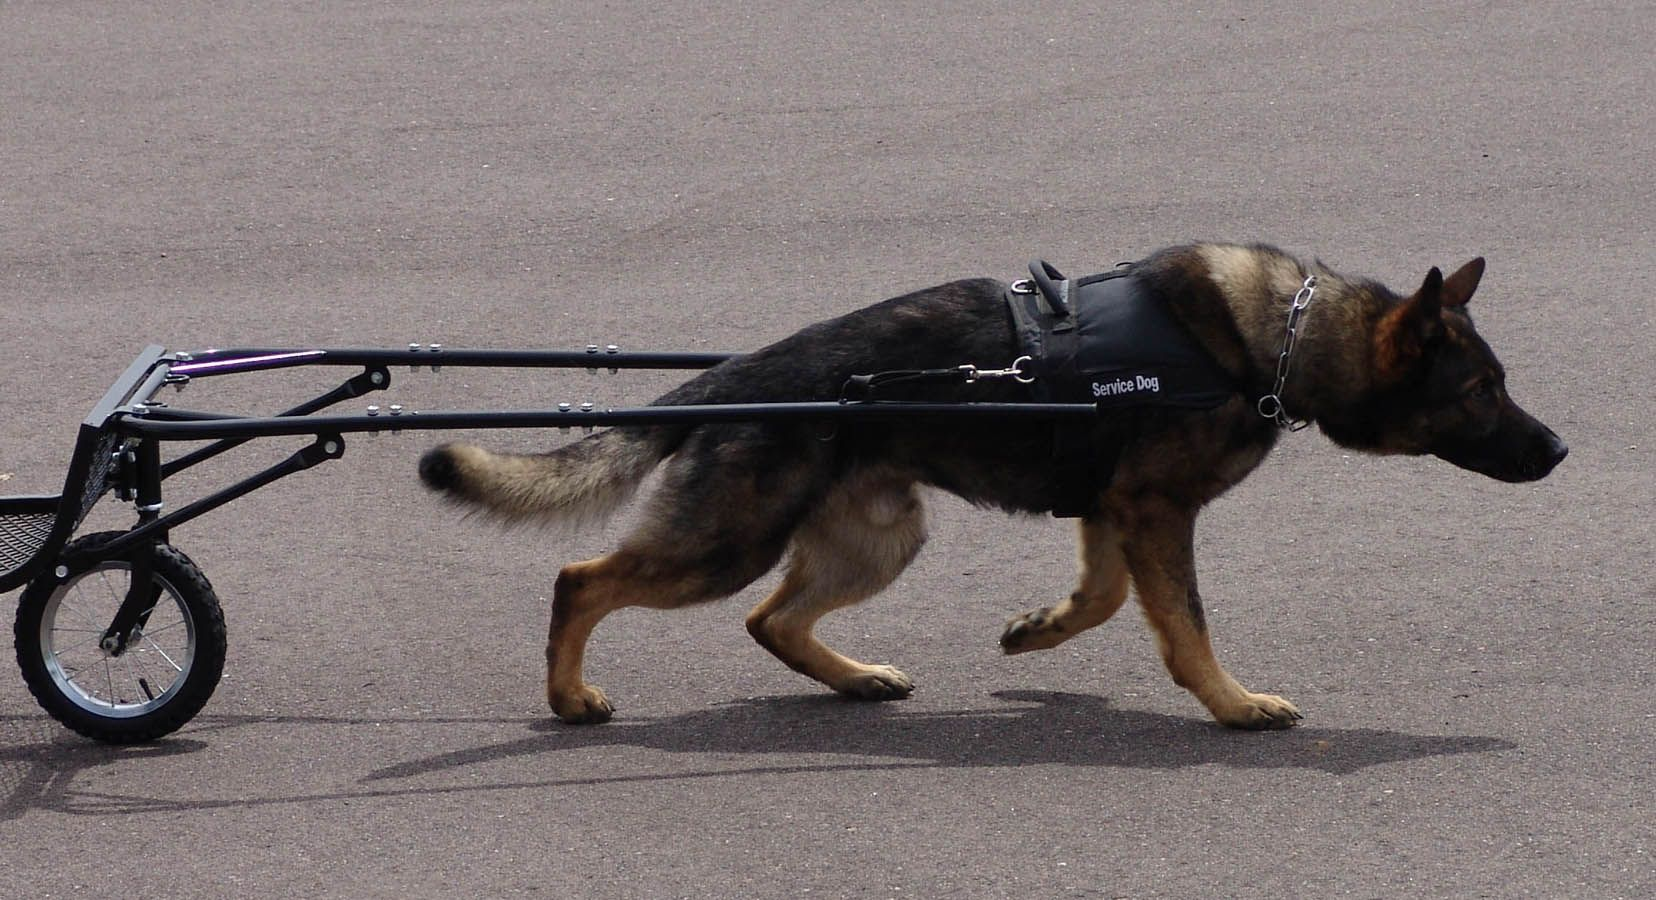 Pin by Teddy Freddy on Cart K9 dogs, Sporting dogs, Dogs